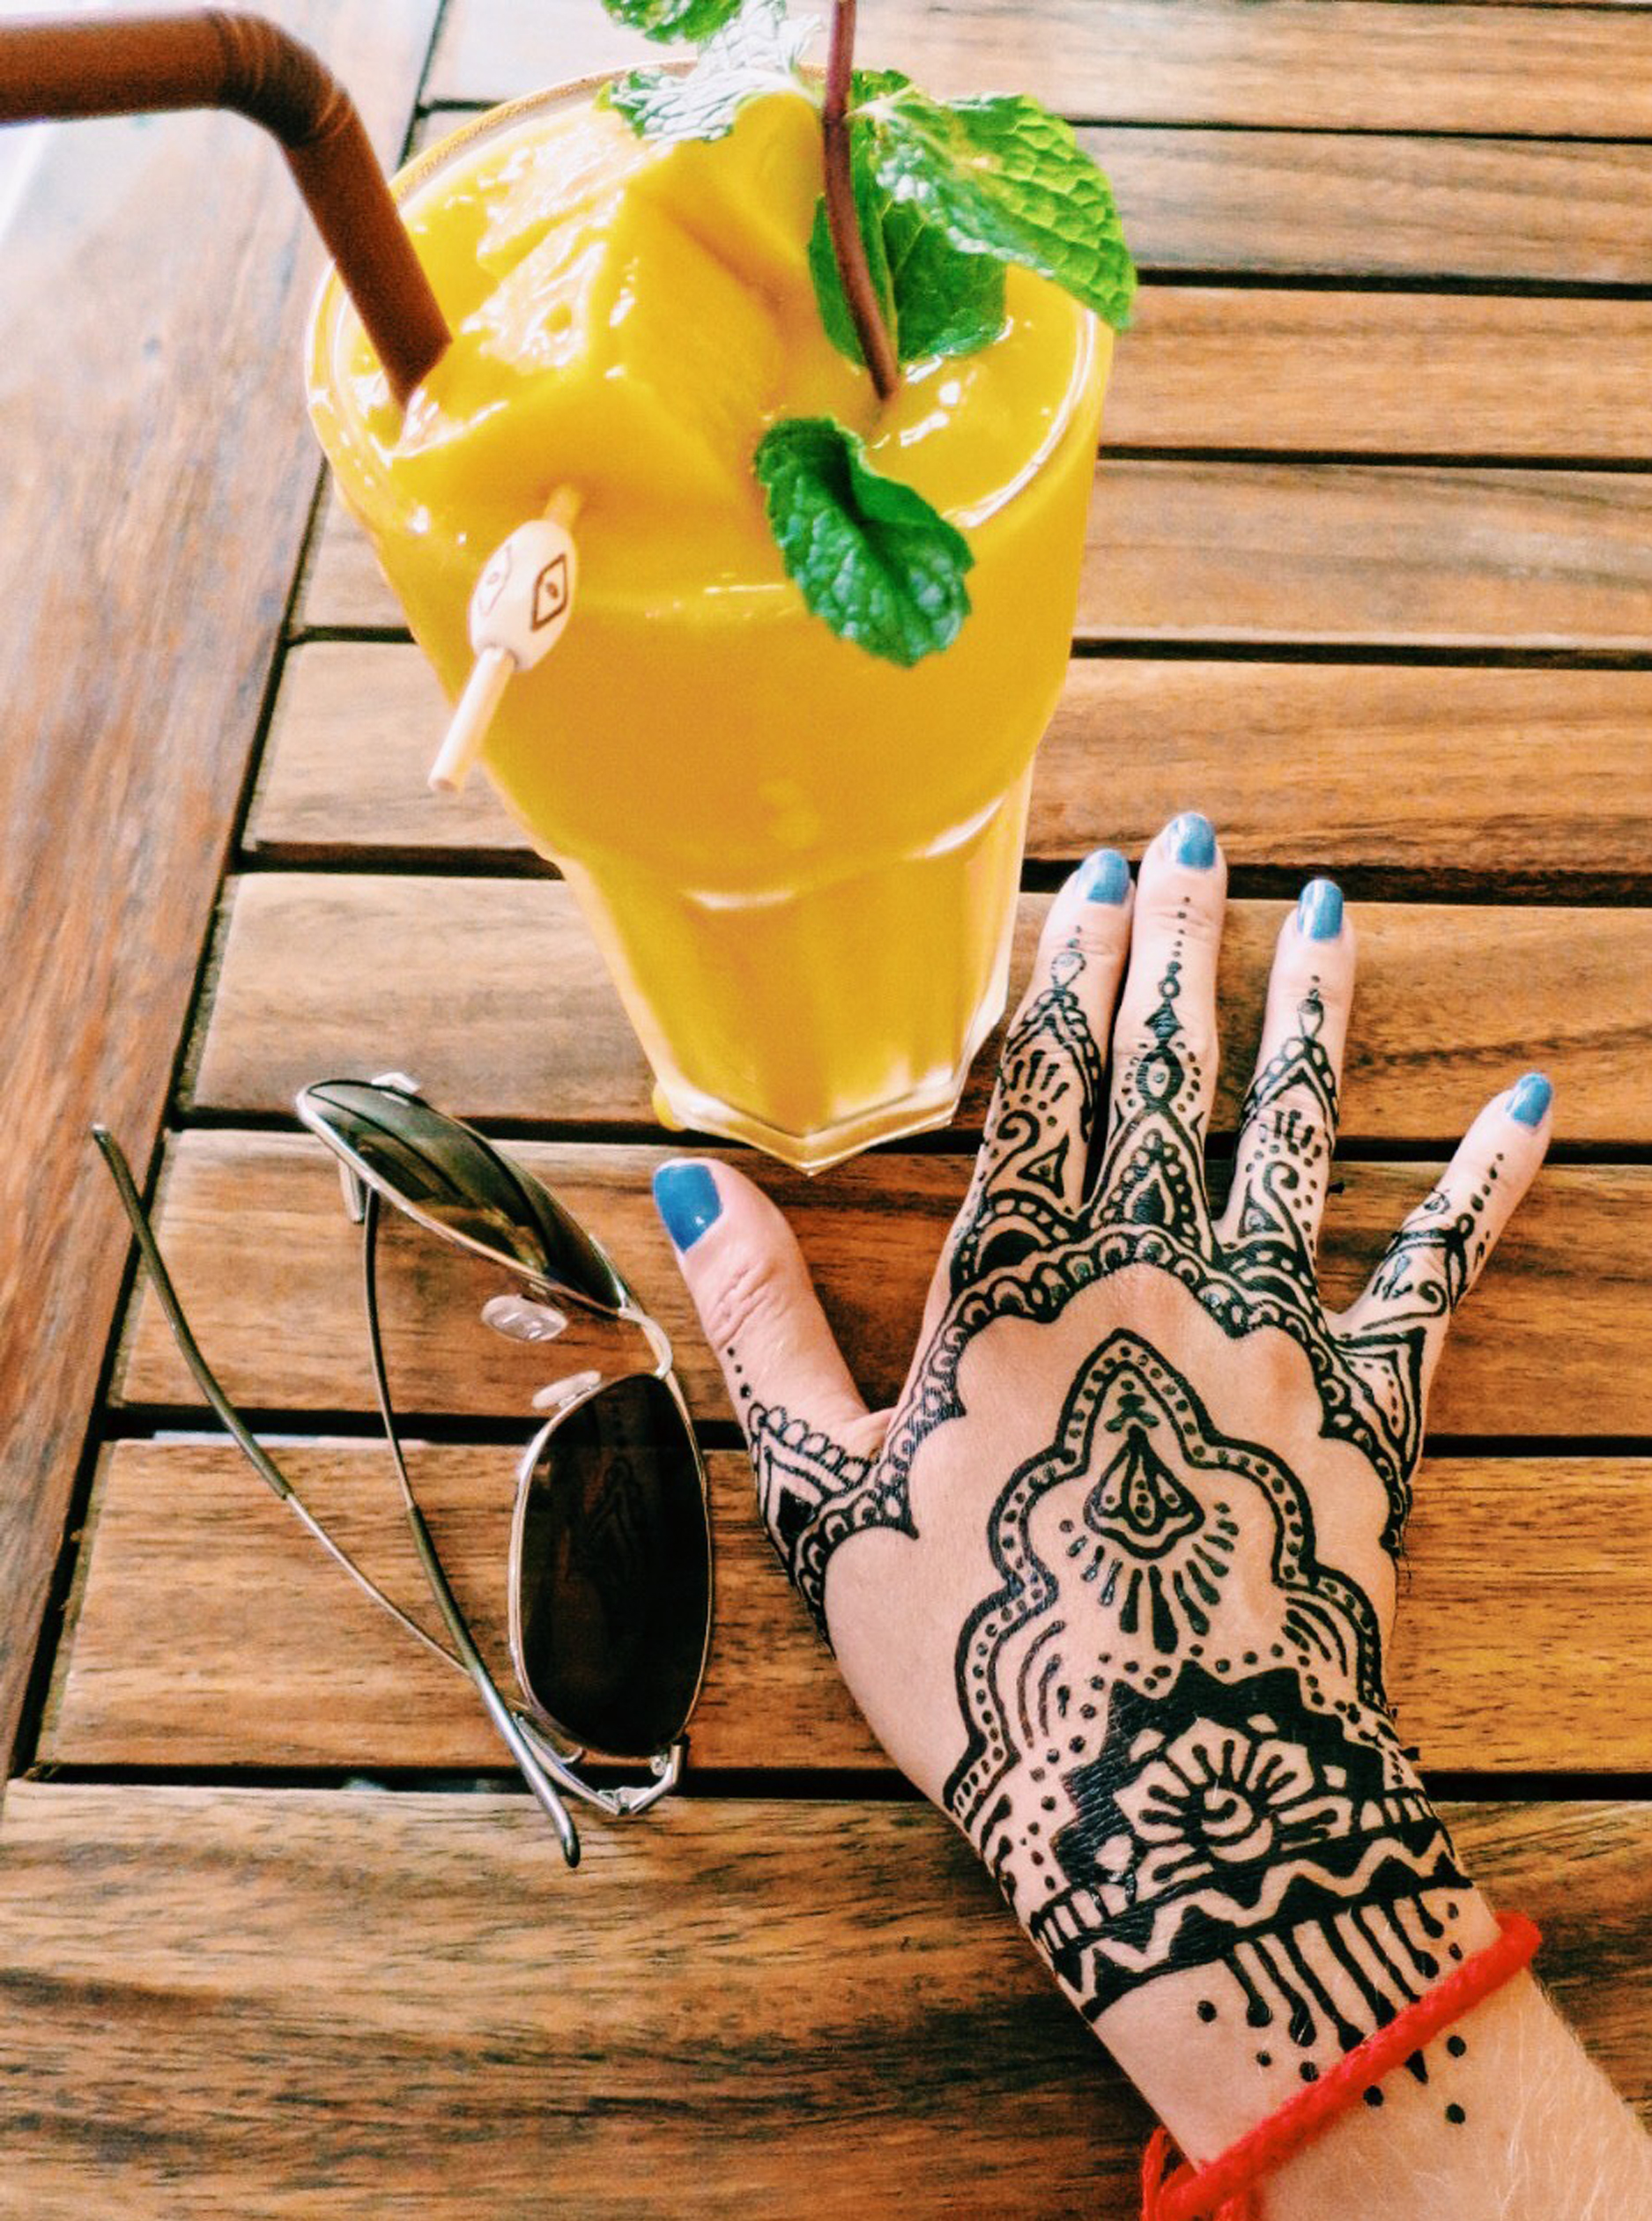 It also matched all the mango smoothies I gulped down every day. Side note: I went a little overboard with the henna in Thailand.